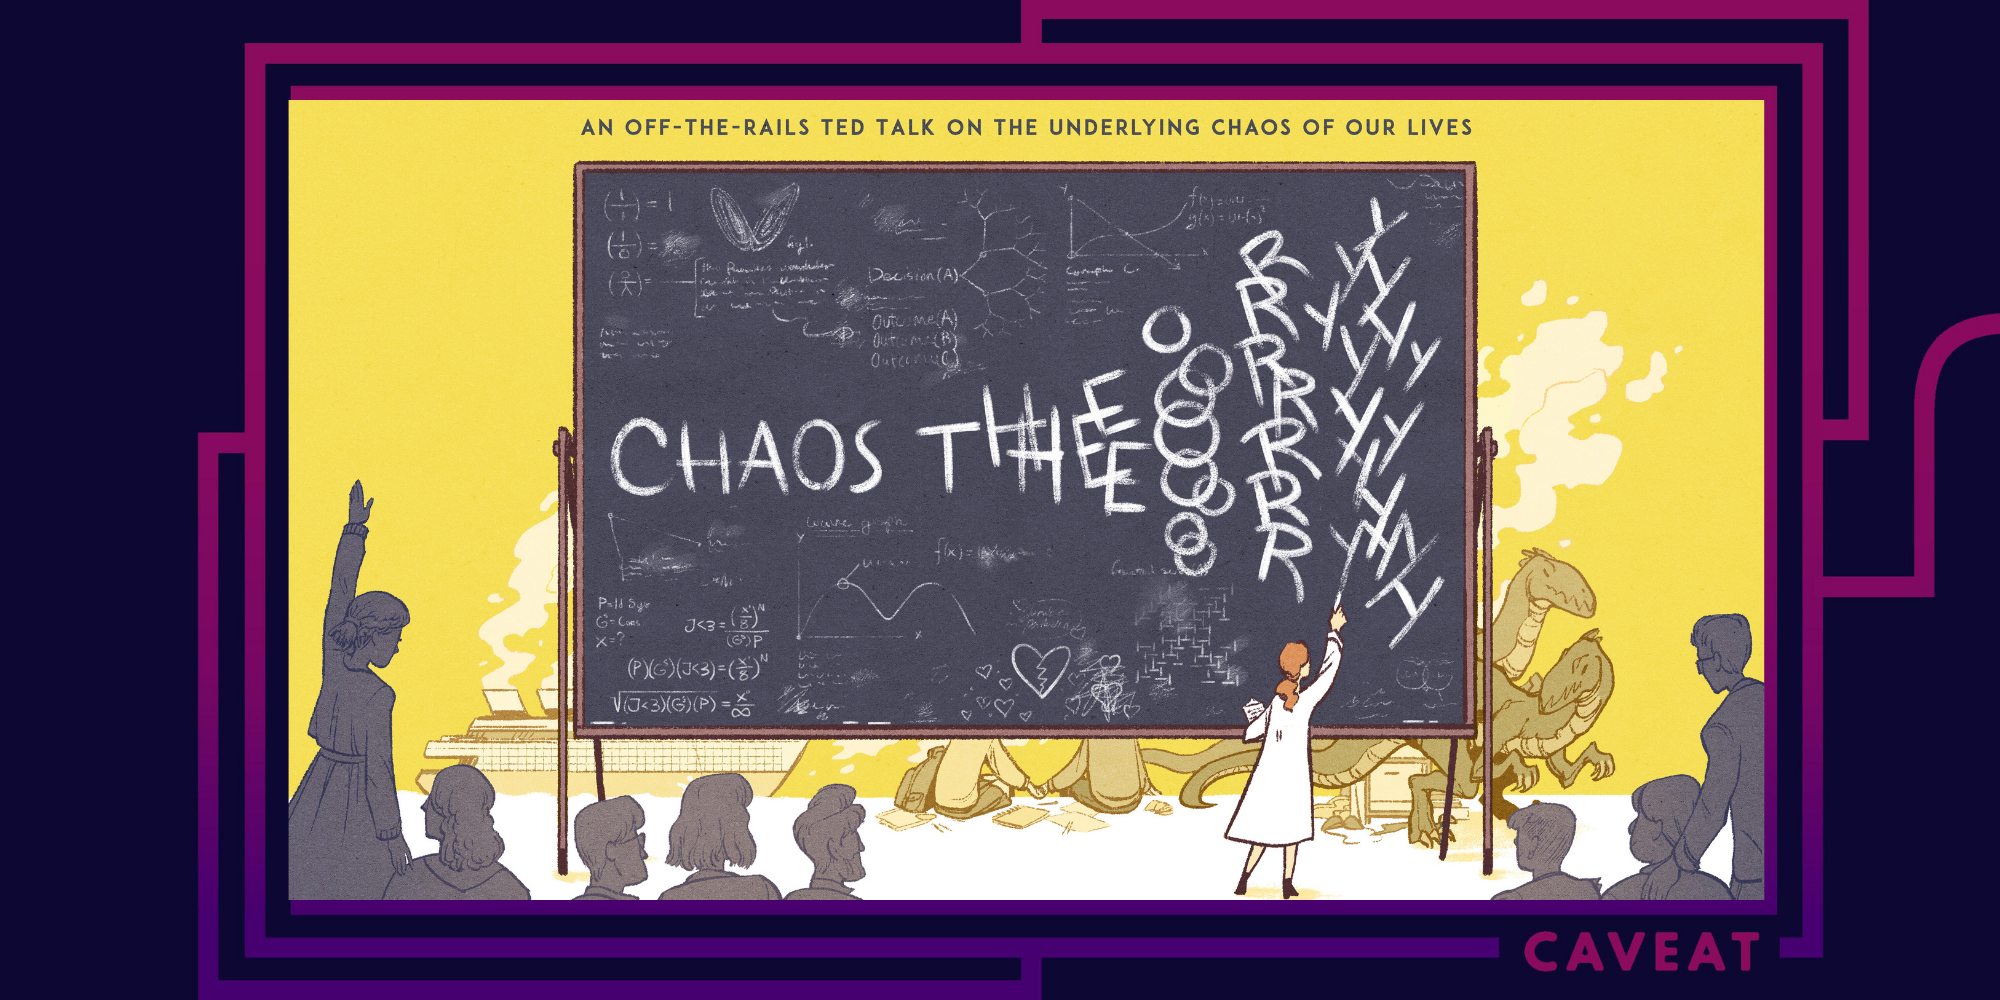 103735 image - Chaos Theory: an off-the-rails TED Talk on the underlying chaos of our lives copy copy